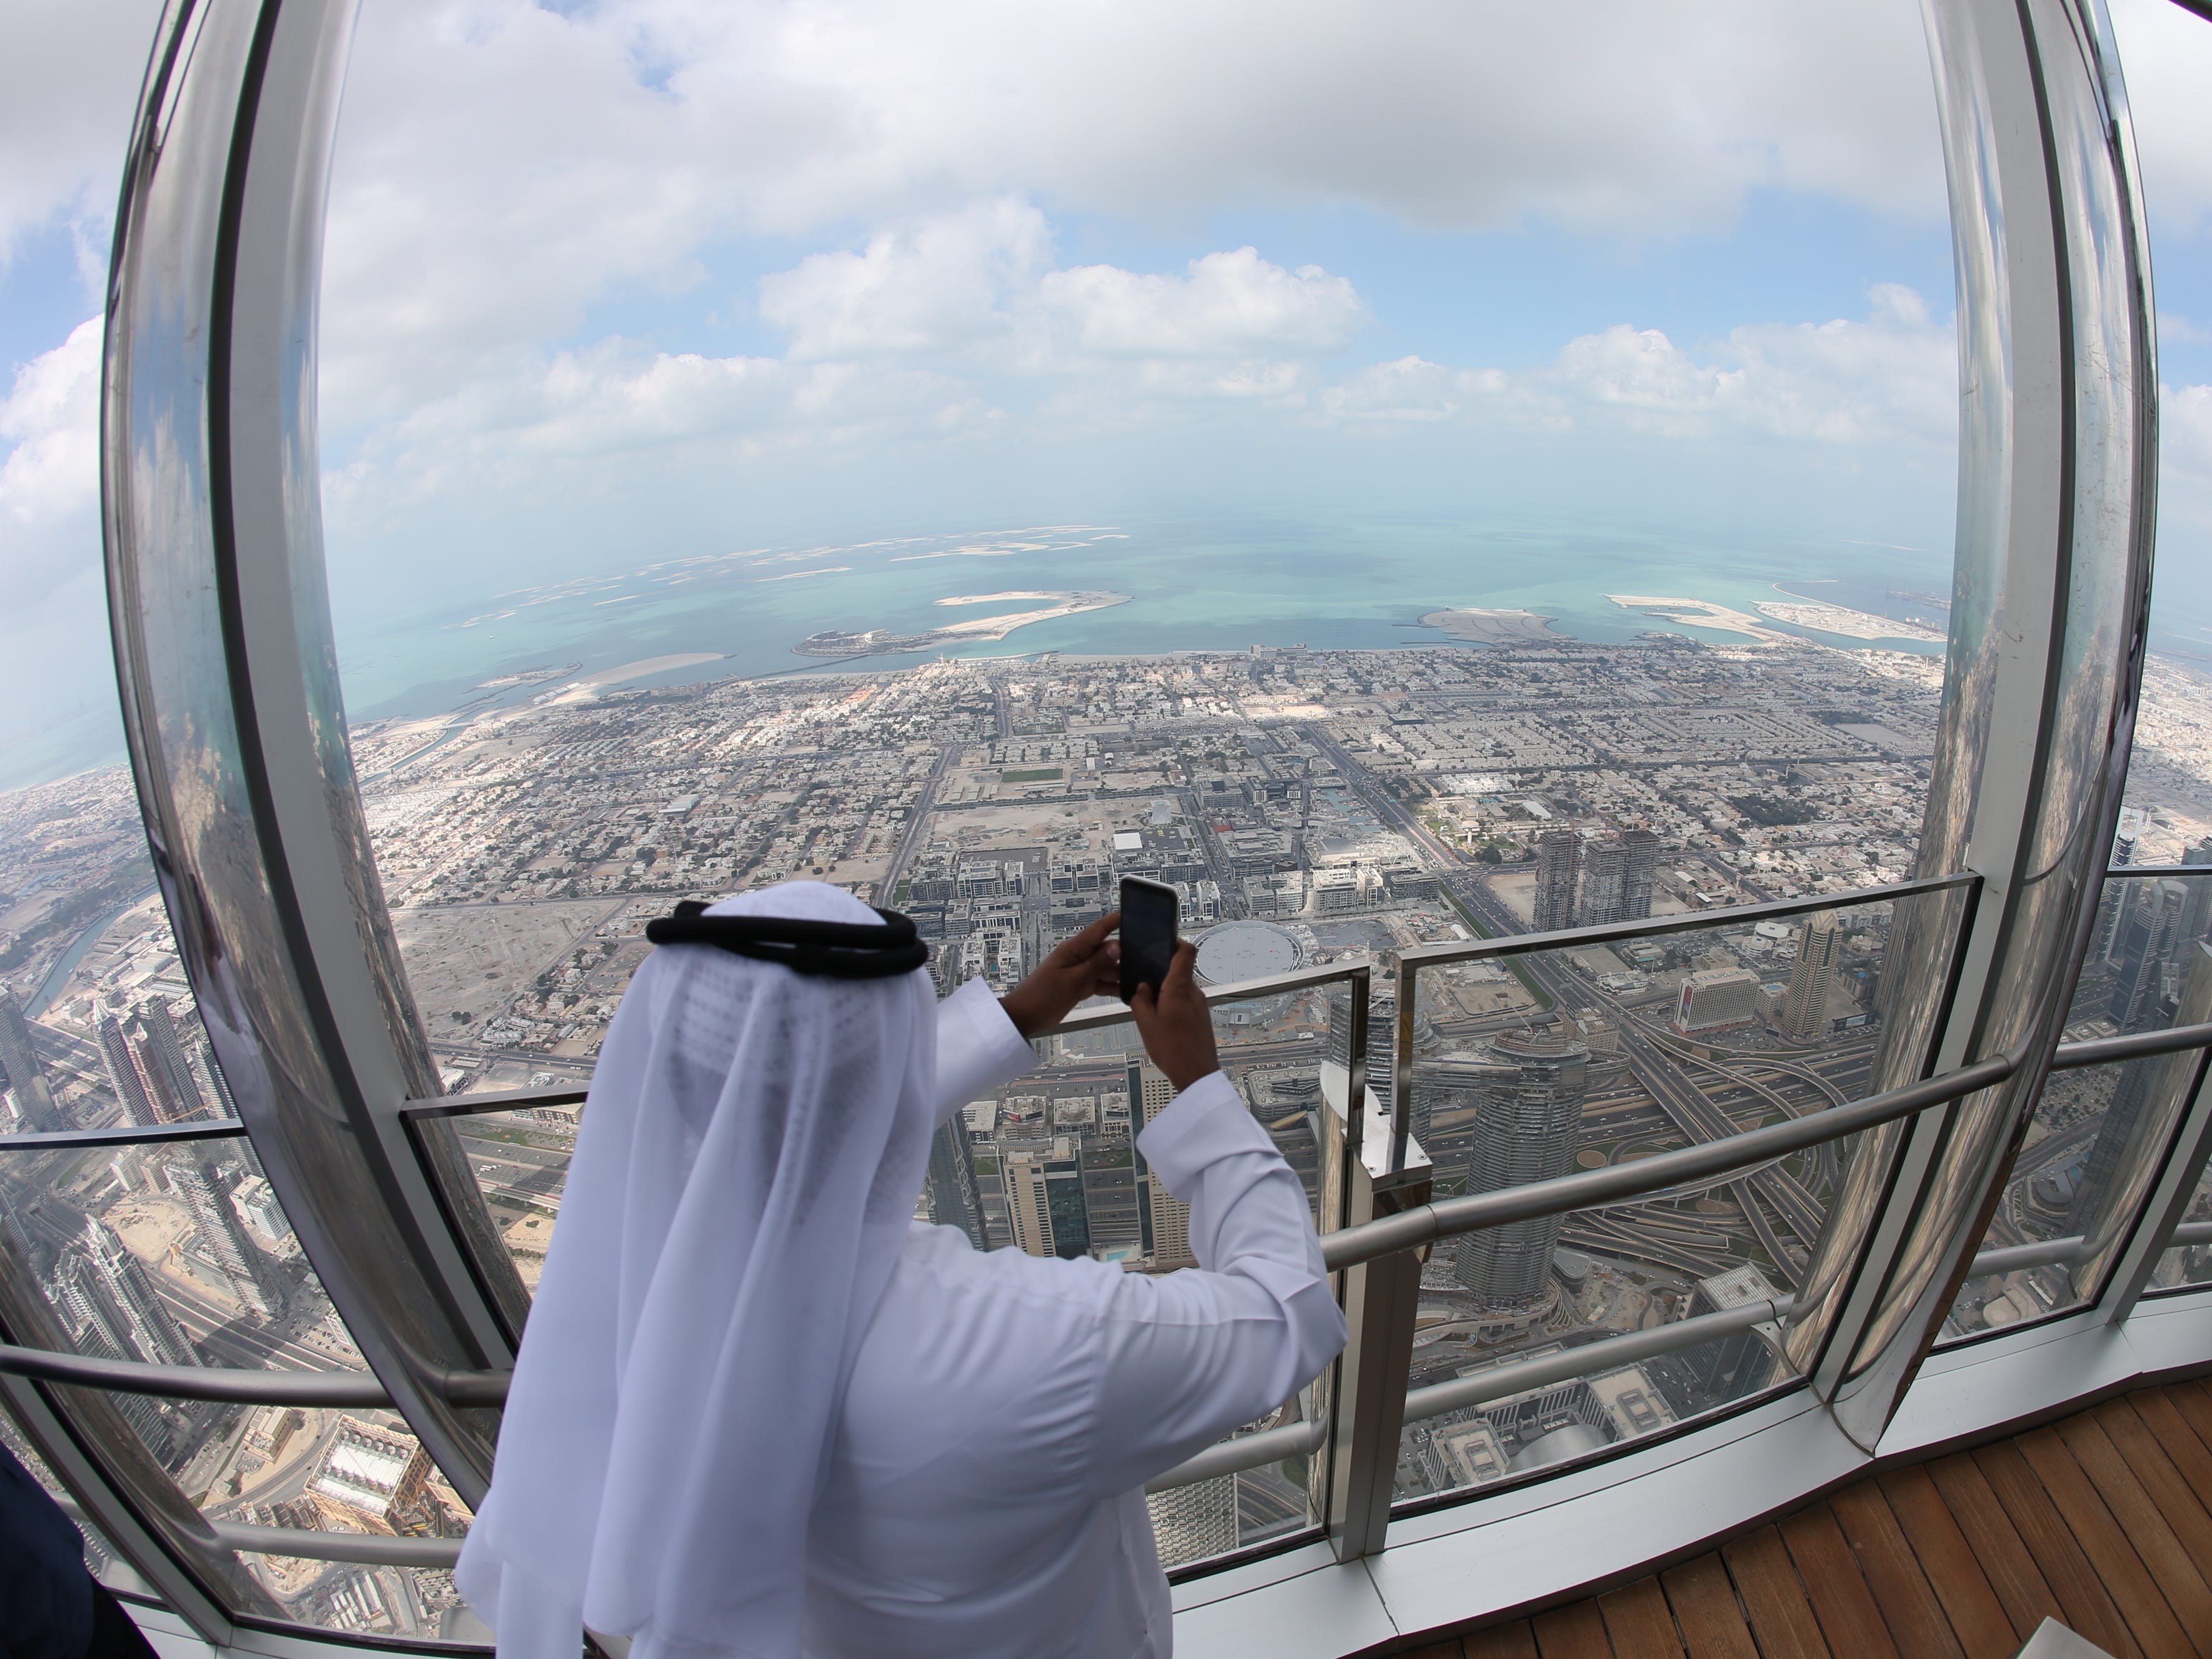 epa07366683 A picture taken with a fish eye lens shows UAE man taking photo from the new highest lounge in the world at Burj Khalifa in Dubai, United Arab Emirates, 13 February 2019. Ahmad Al Falasi, Executive Director Emaar Properties announced during media briefing the opening of highest lounge in the world at Burj Khalifa which is located at 152, 153 and 154 floor which have distinctive settings each assuring never before seen views of the city.  EPA-EFE/ALI HAIDER ORG XMIT: XAH001